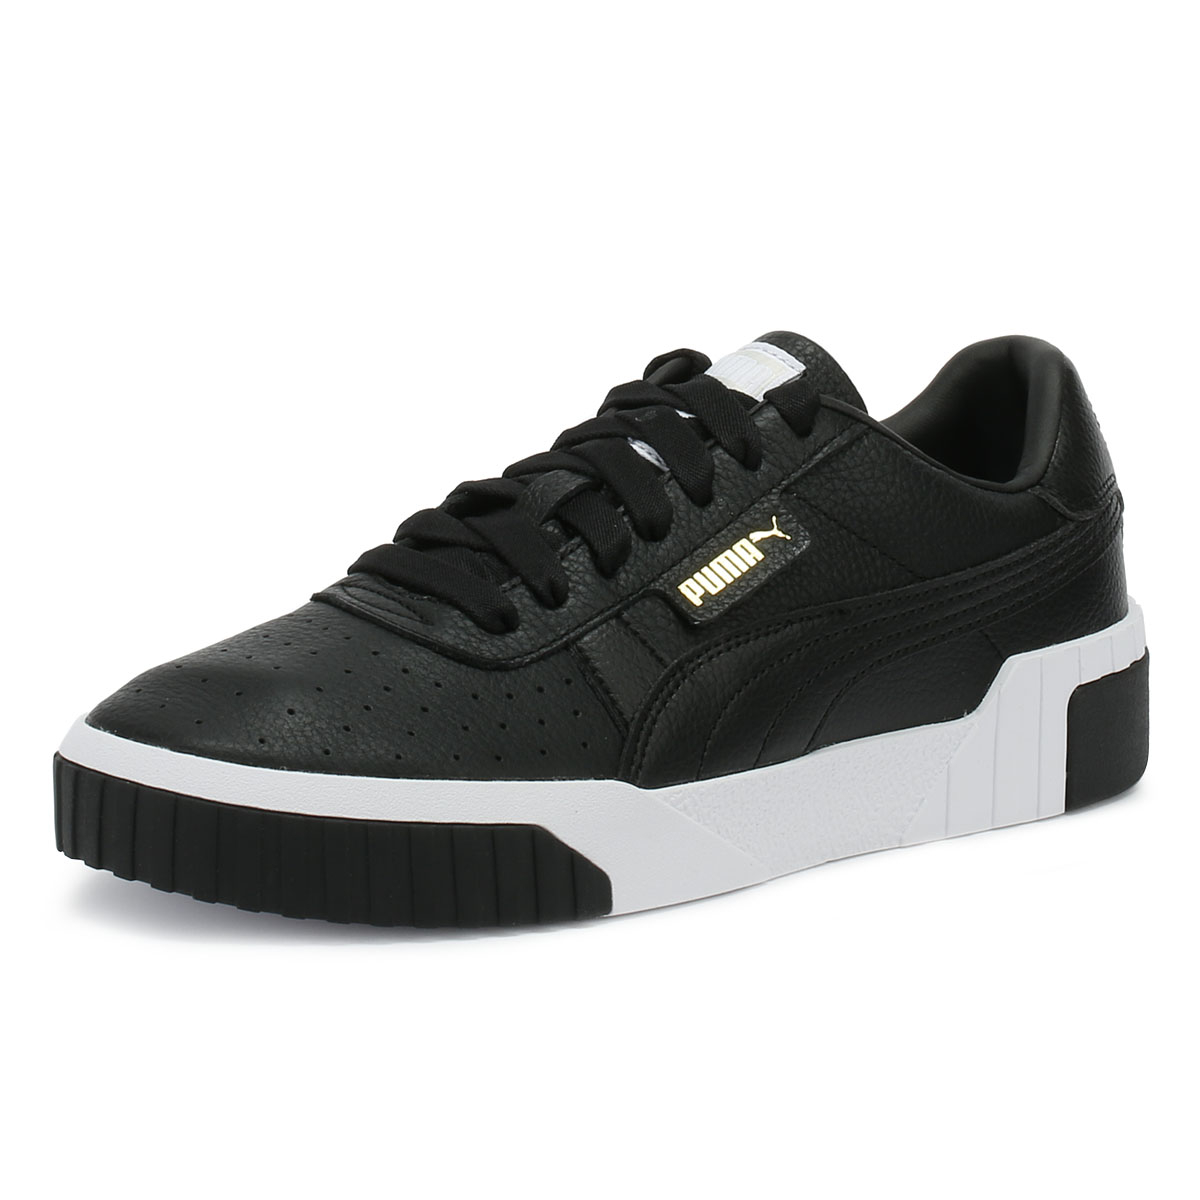 Details about PUMA Cali Womens Trainers Black & White Lace Up Sport Casual Ladies Shoes